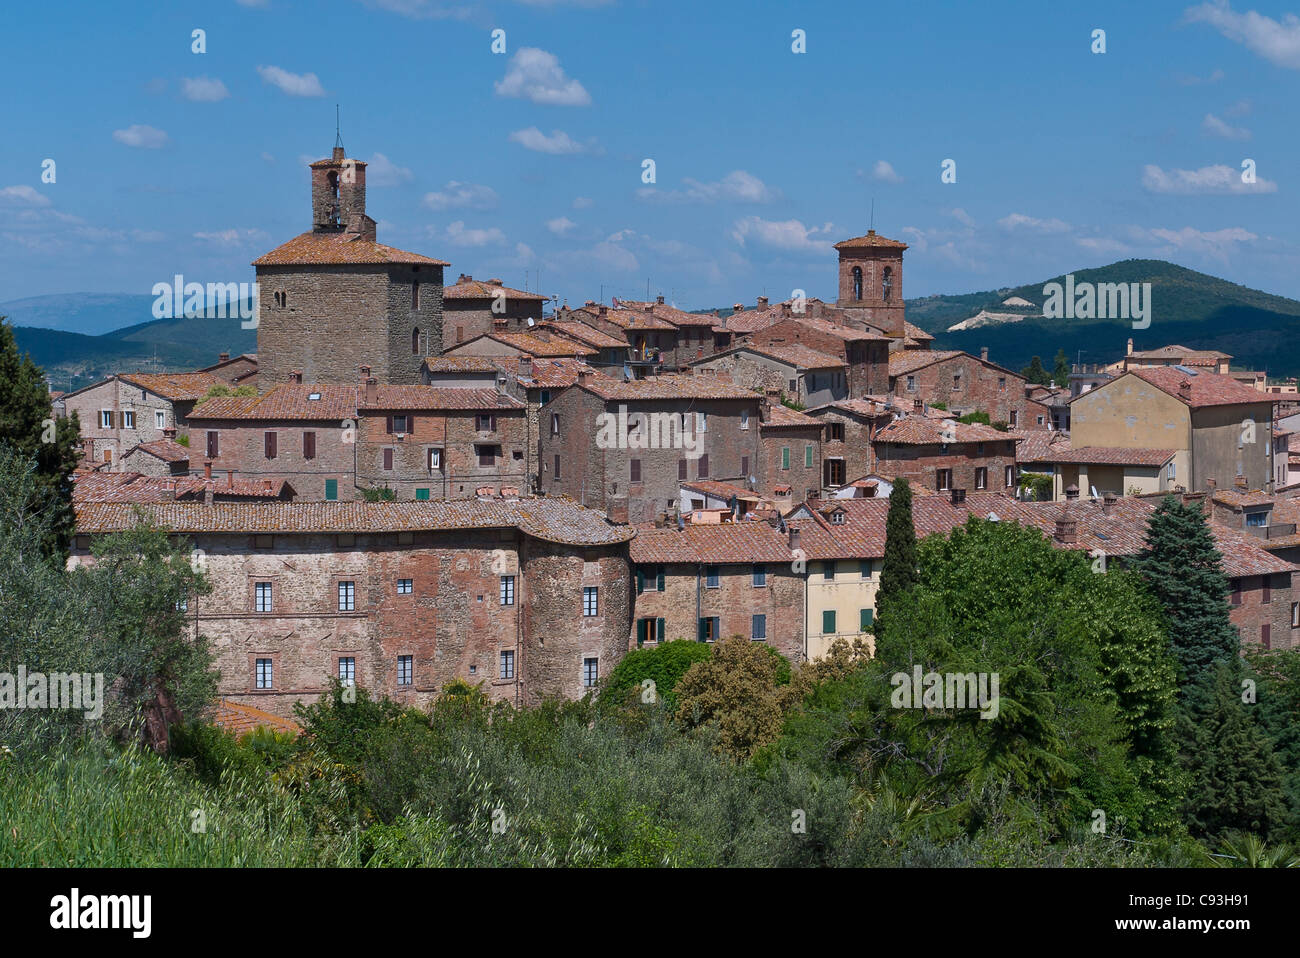 Overall view of the red tile roof lines and towers of the medieval walled town of  Panicale, Italy. - Stock Image